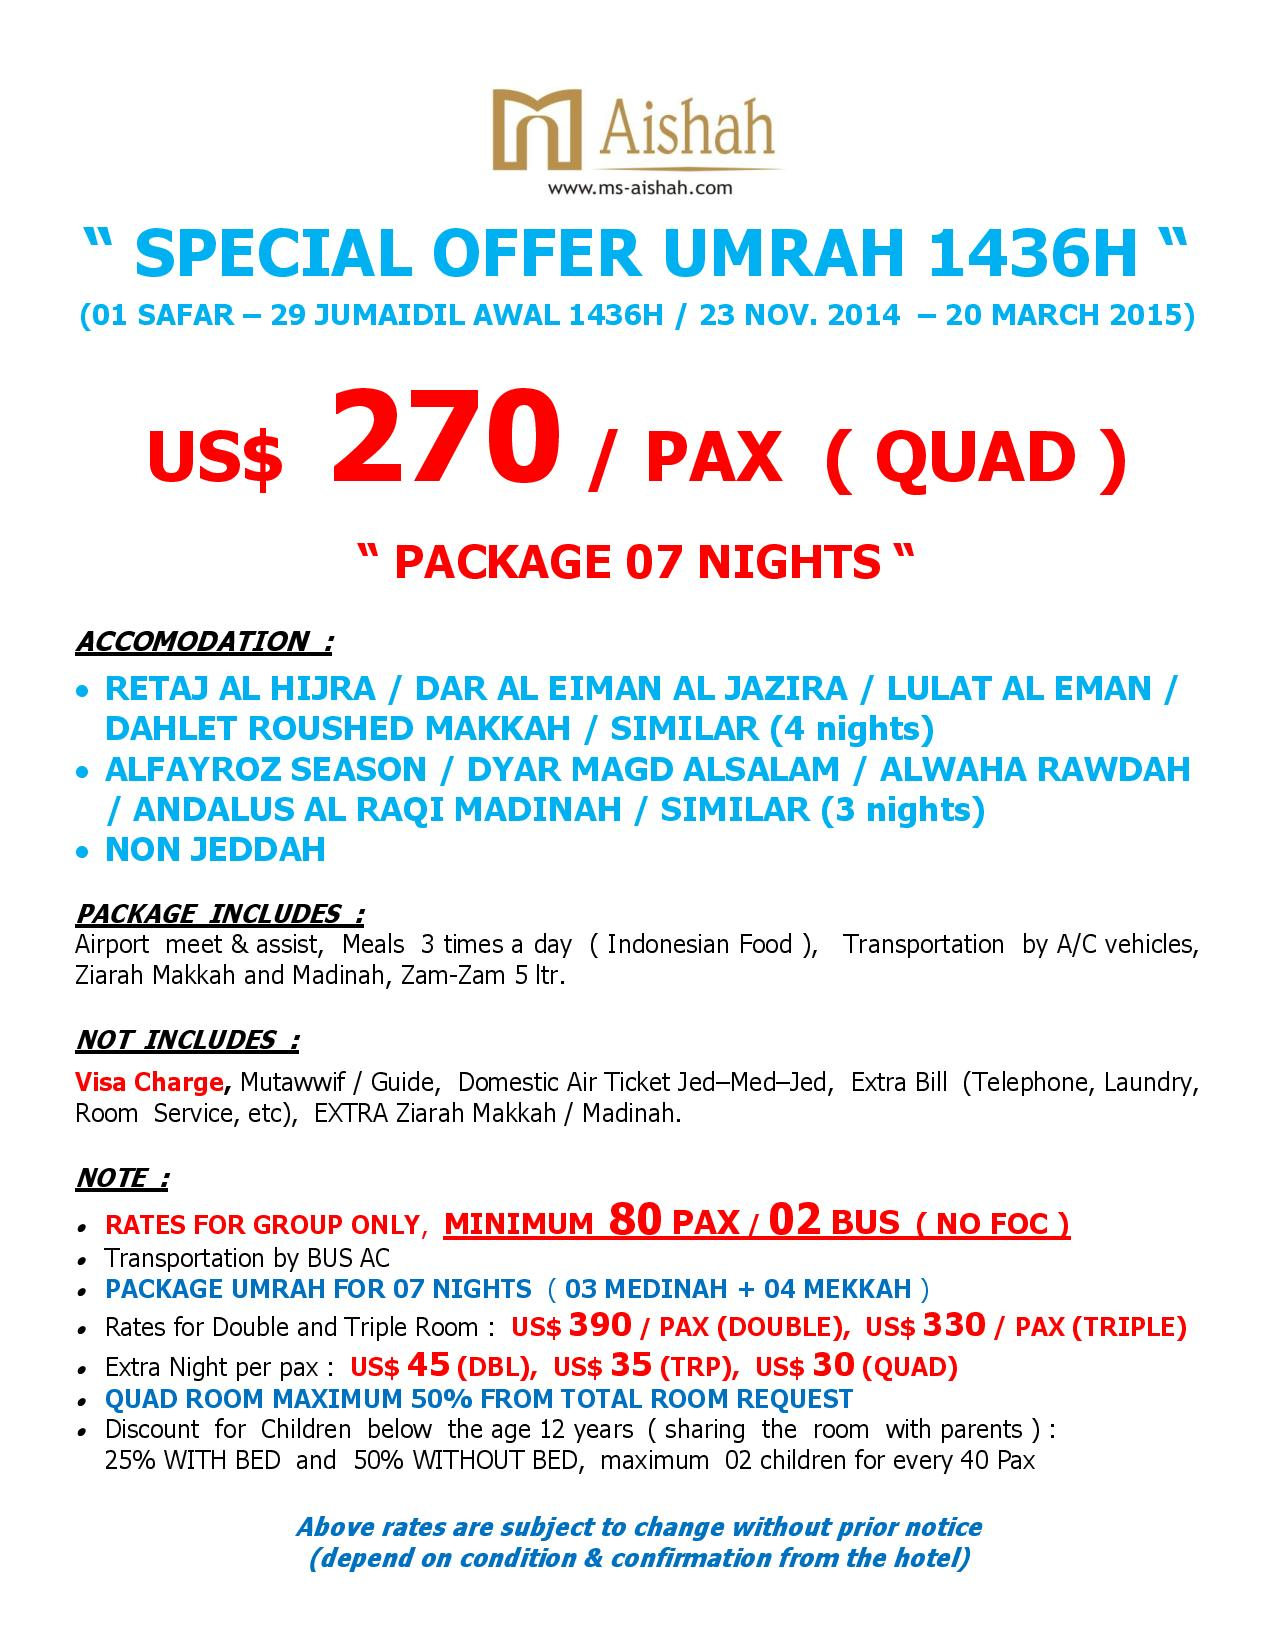 SPECIAL OFFER UMRAH 1436H SEASON 1-page-002